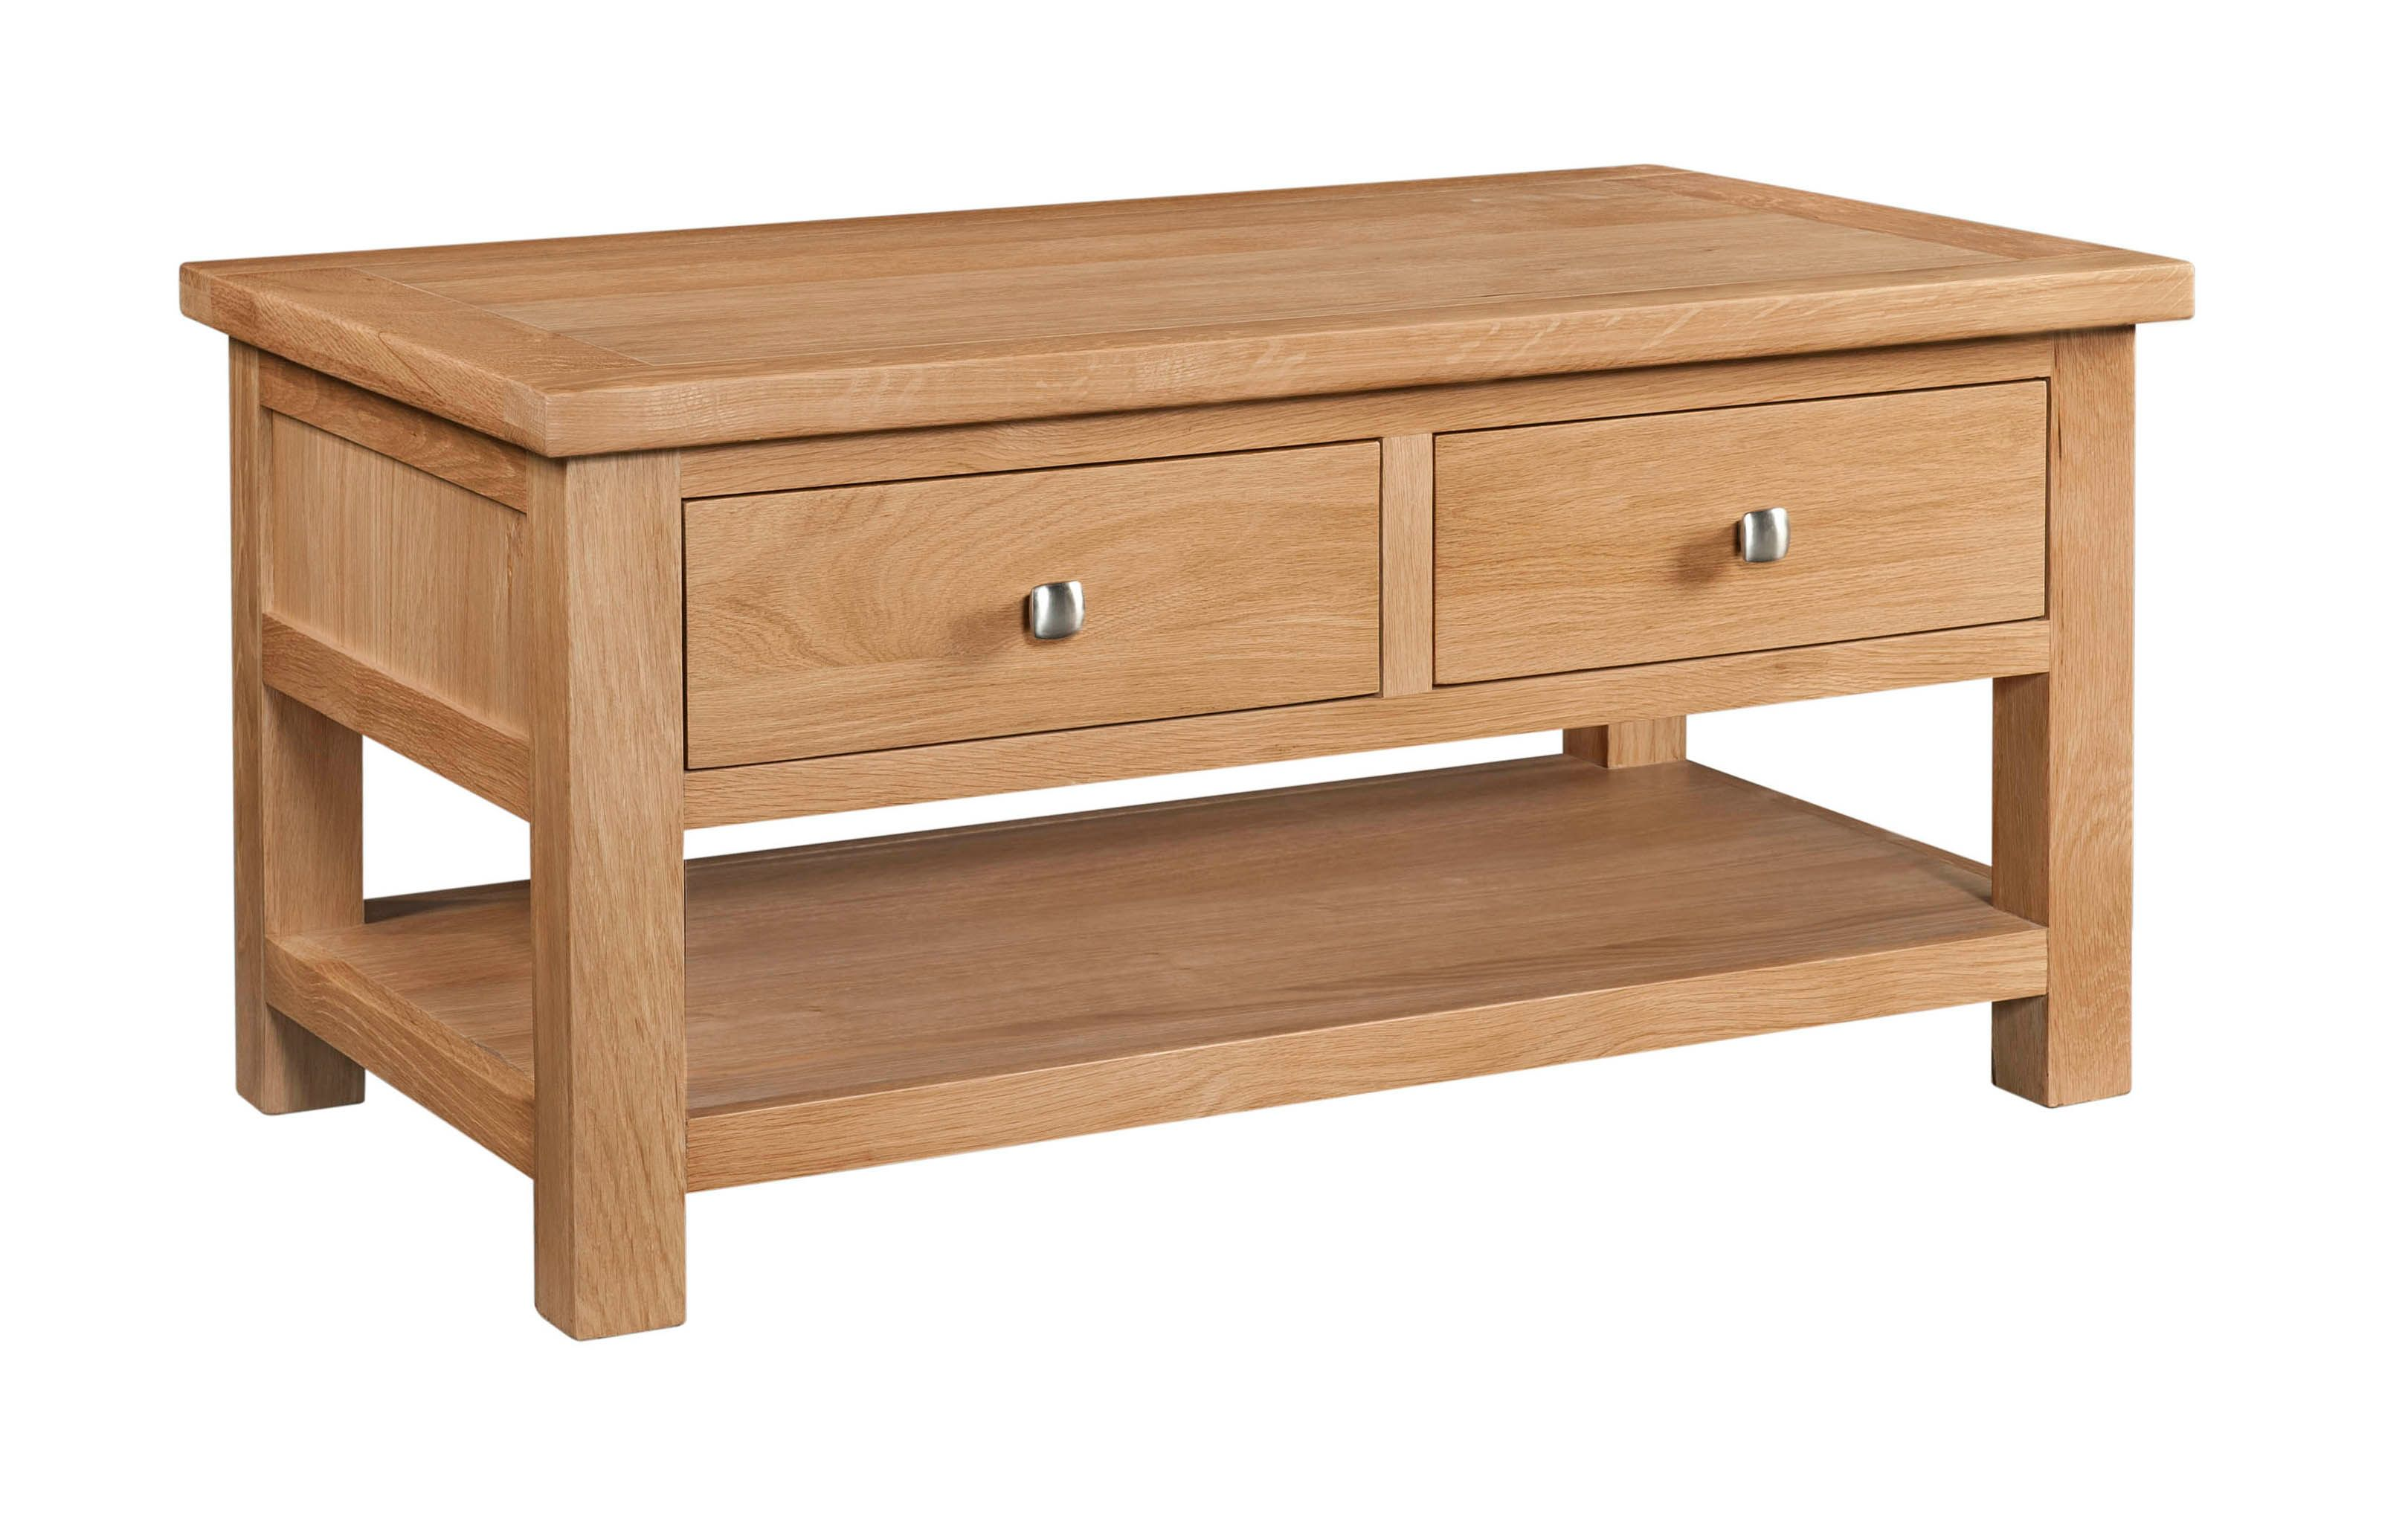 Dorchester Oak Coffee Table with 2 Draws